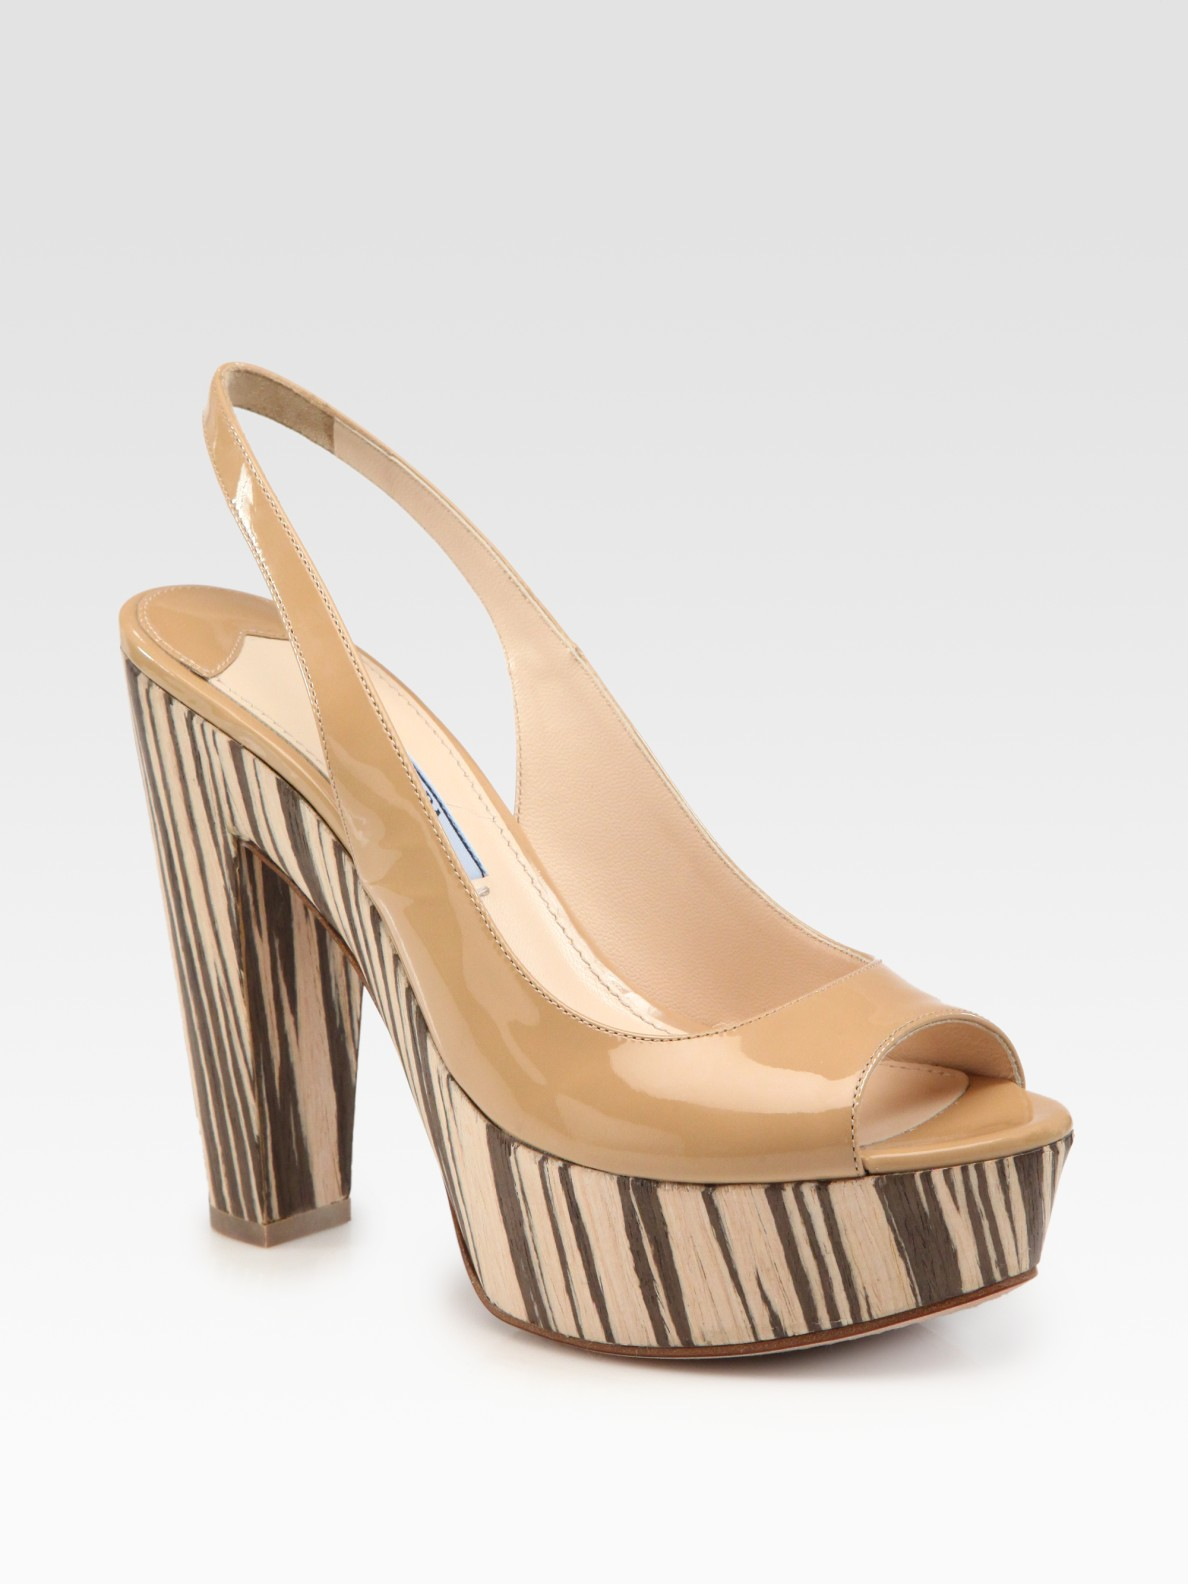 15733f545e5 Lyst - Prada Patent Leather and Wood Slingback Sandals in Natural